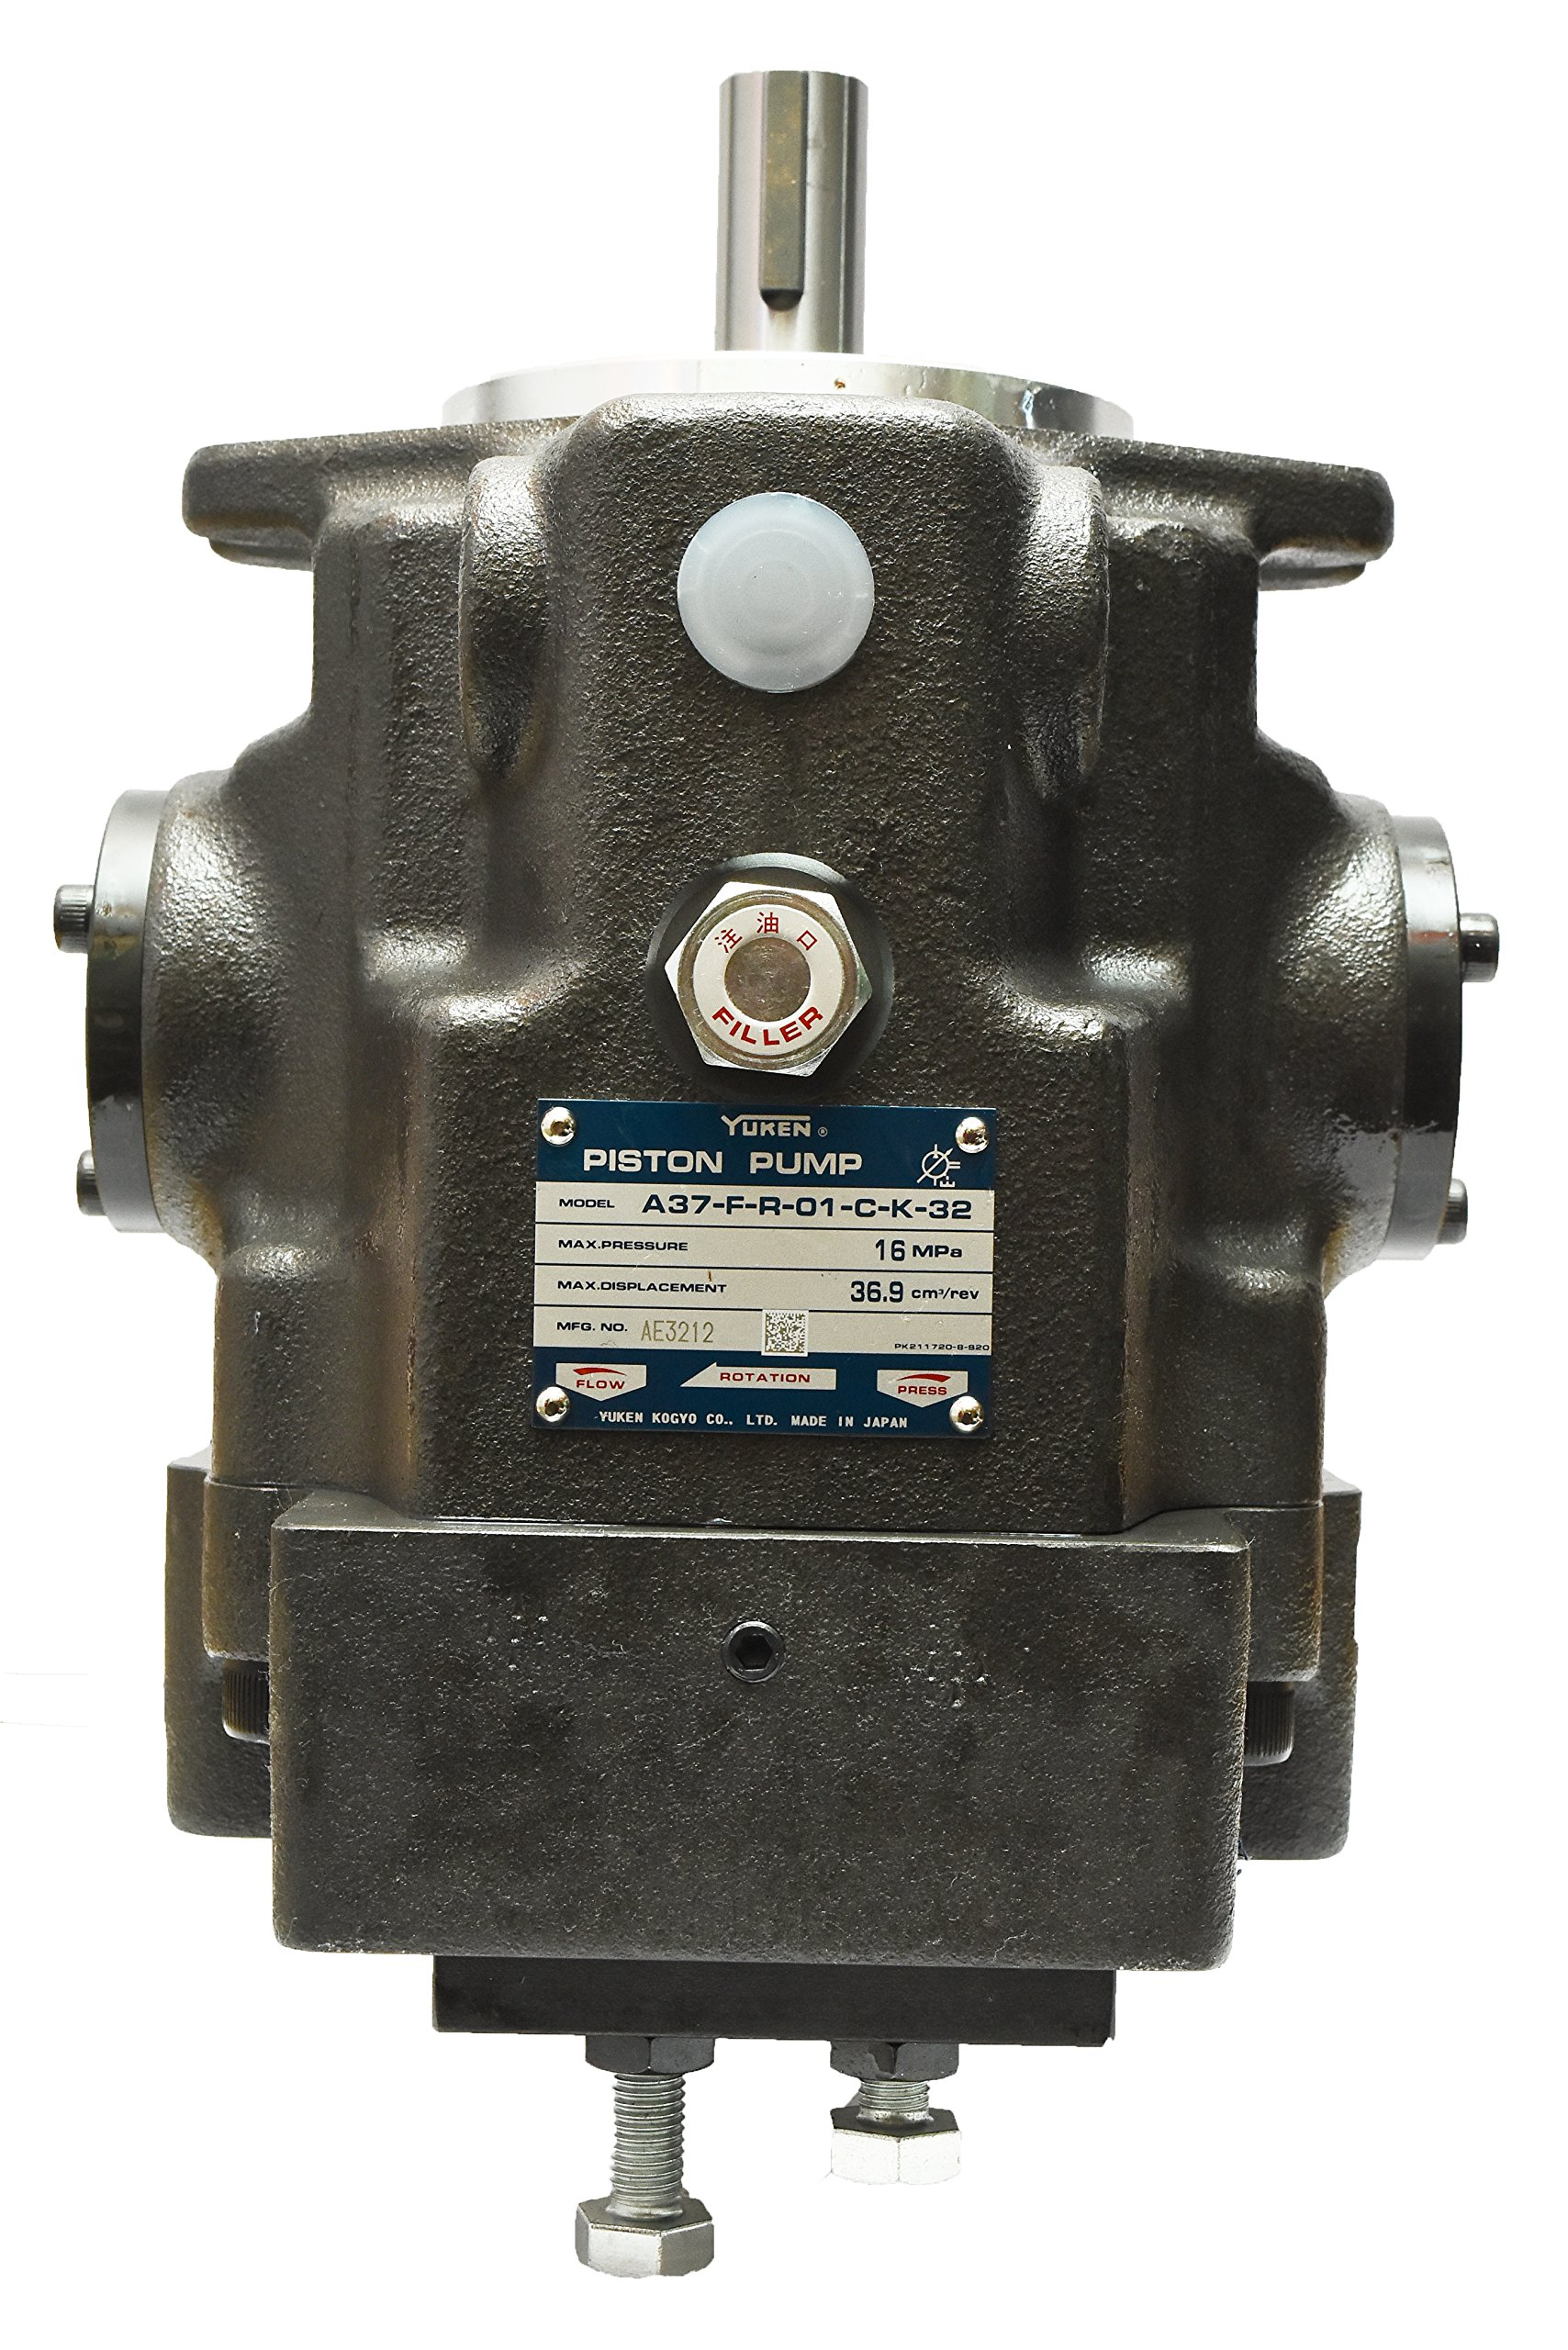 Yuken HYDRAULIC PISTON PUMP A37-F-R-01-B-K-32